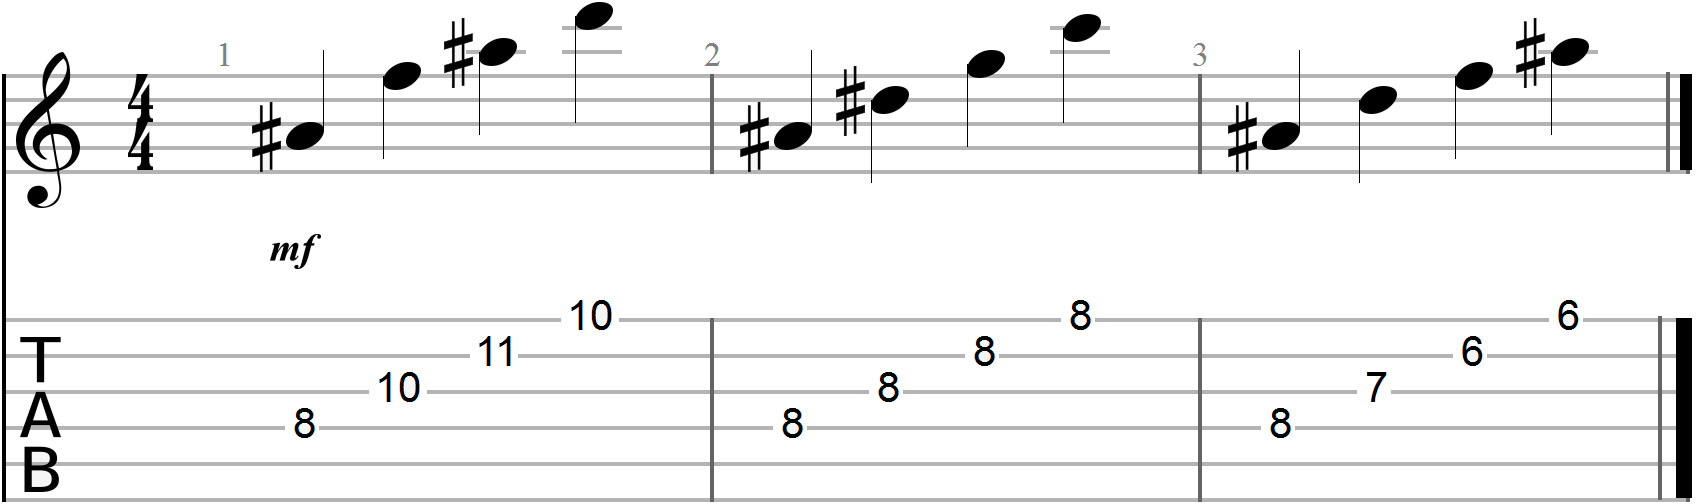 Arpeggiated Chord Progression Guitar Tab